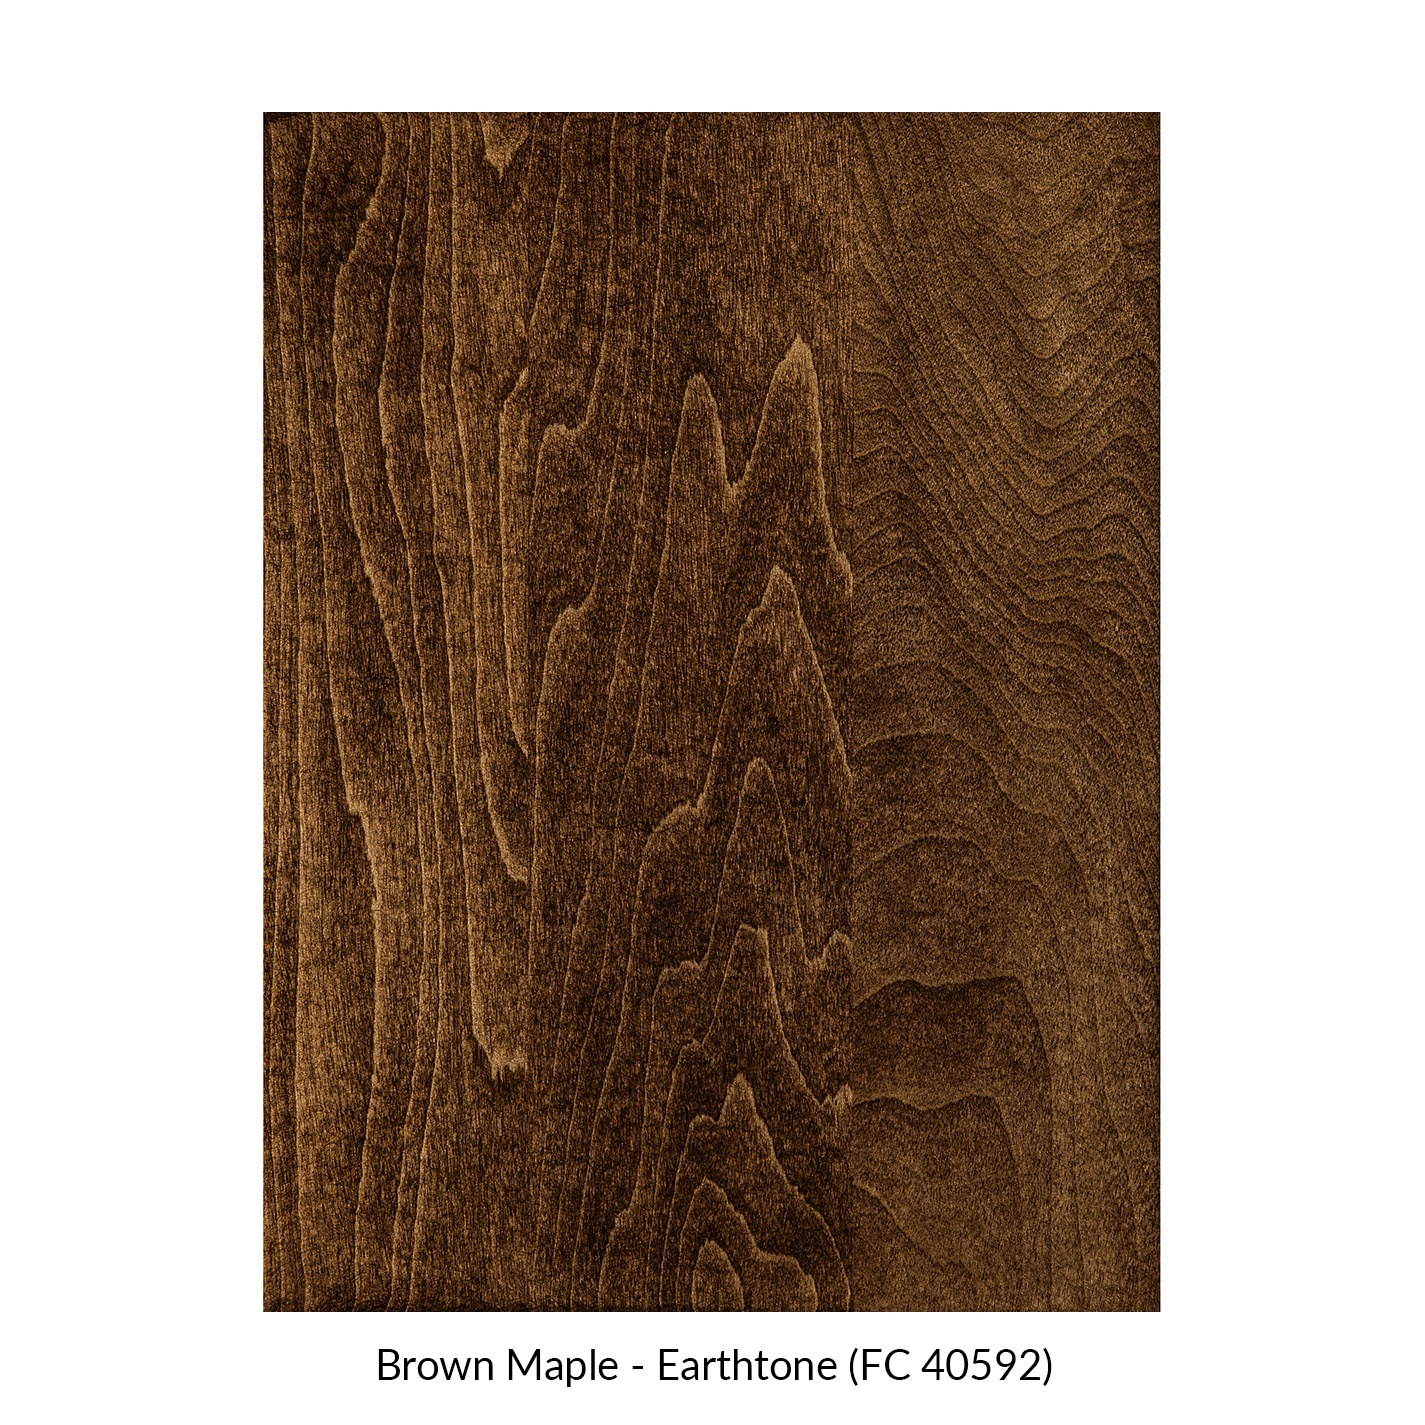 spectrum-brown-maple-earthtone-fc-40592.jpg